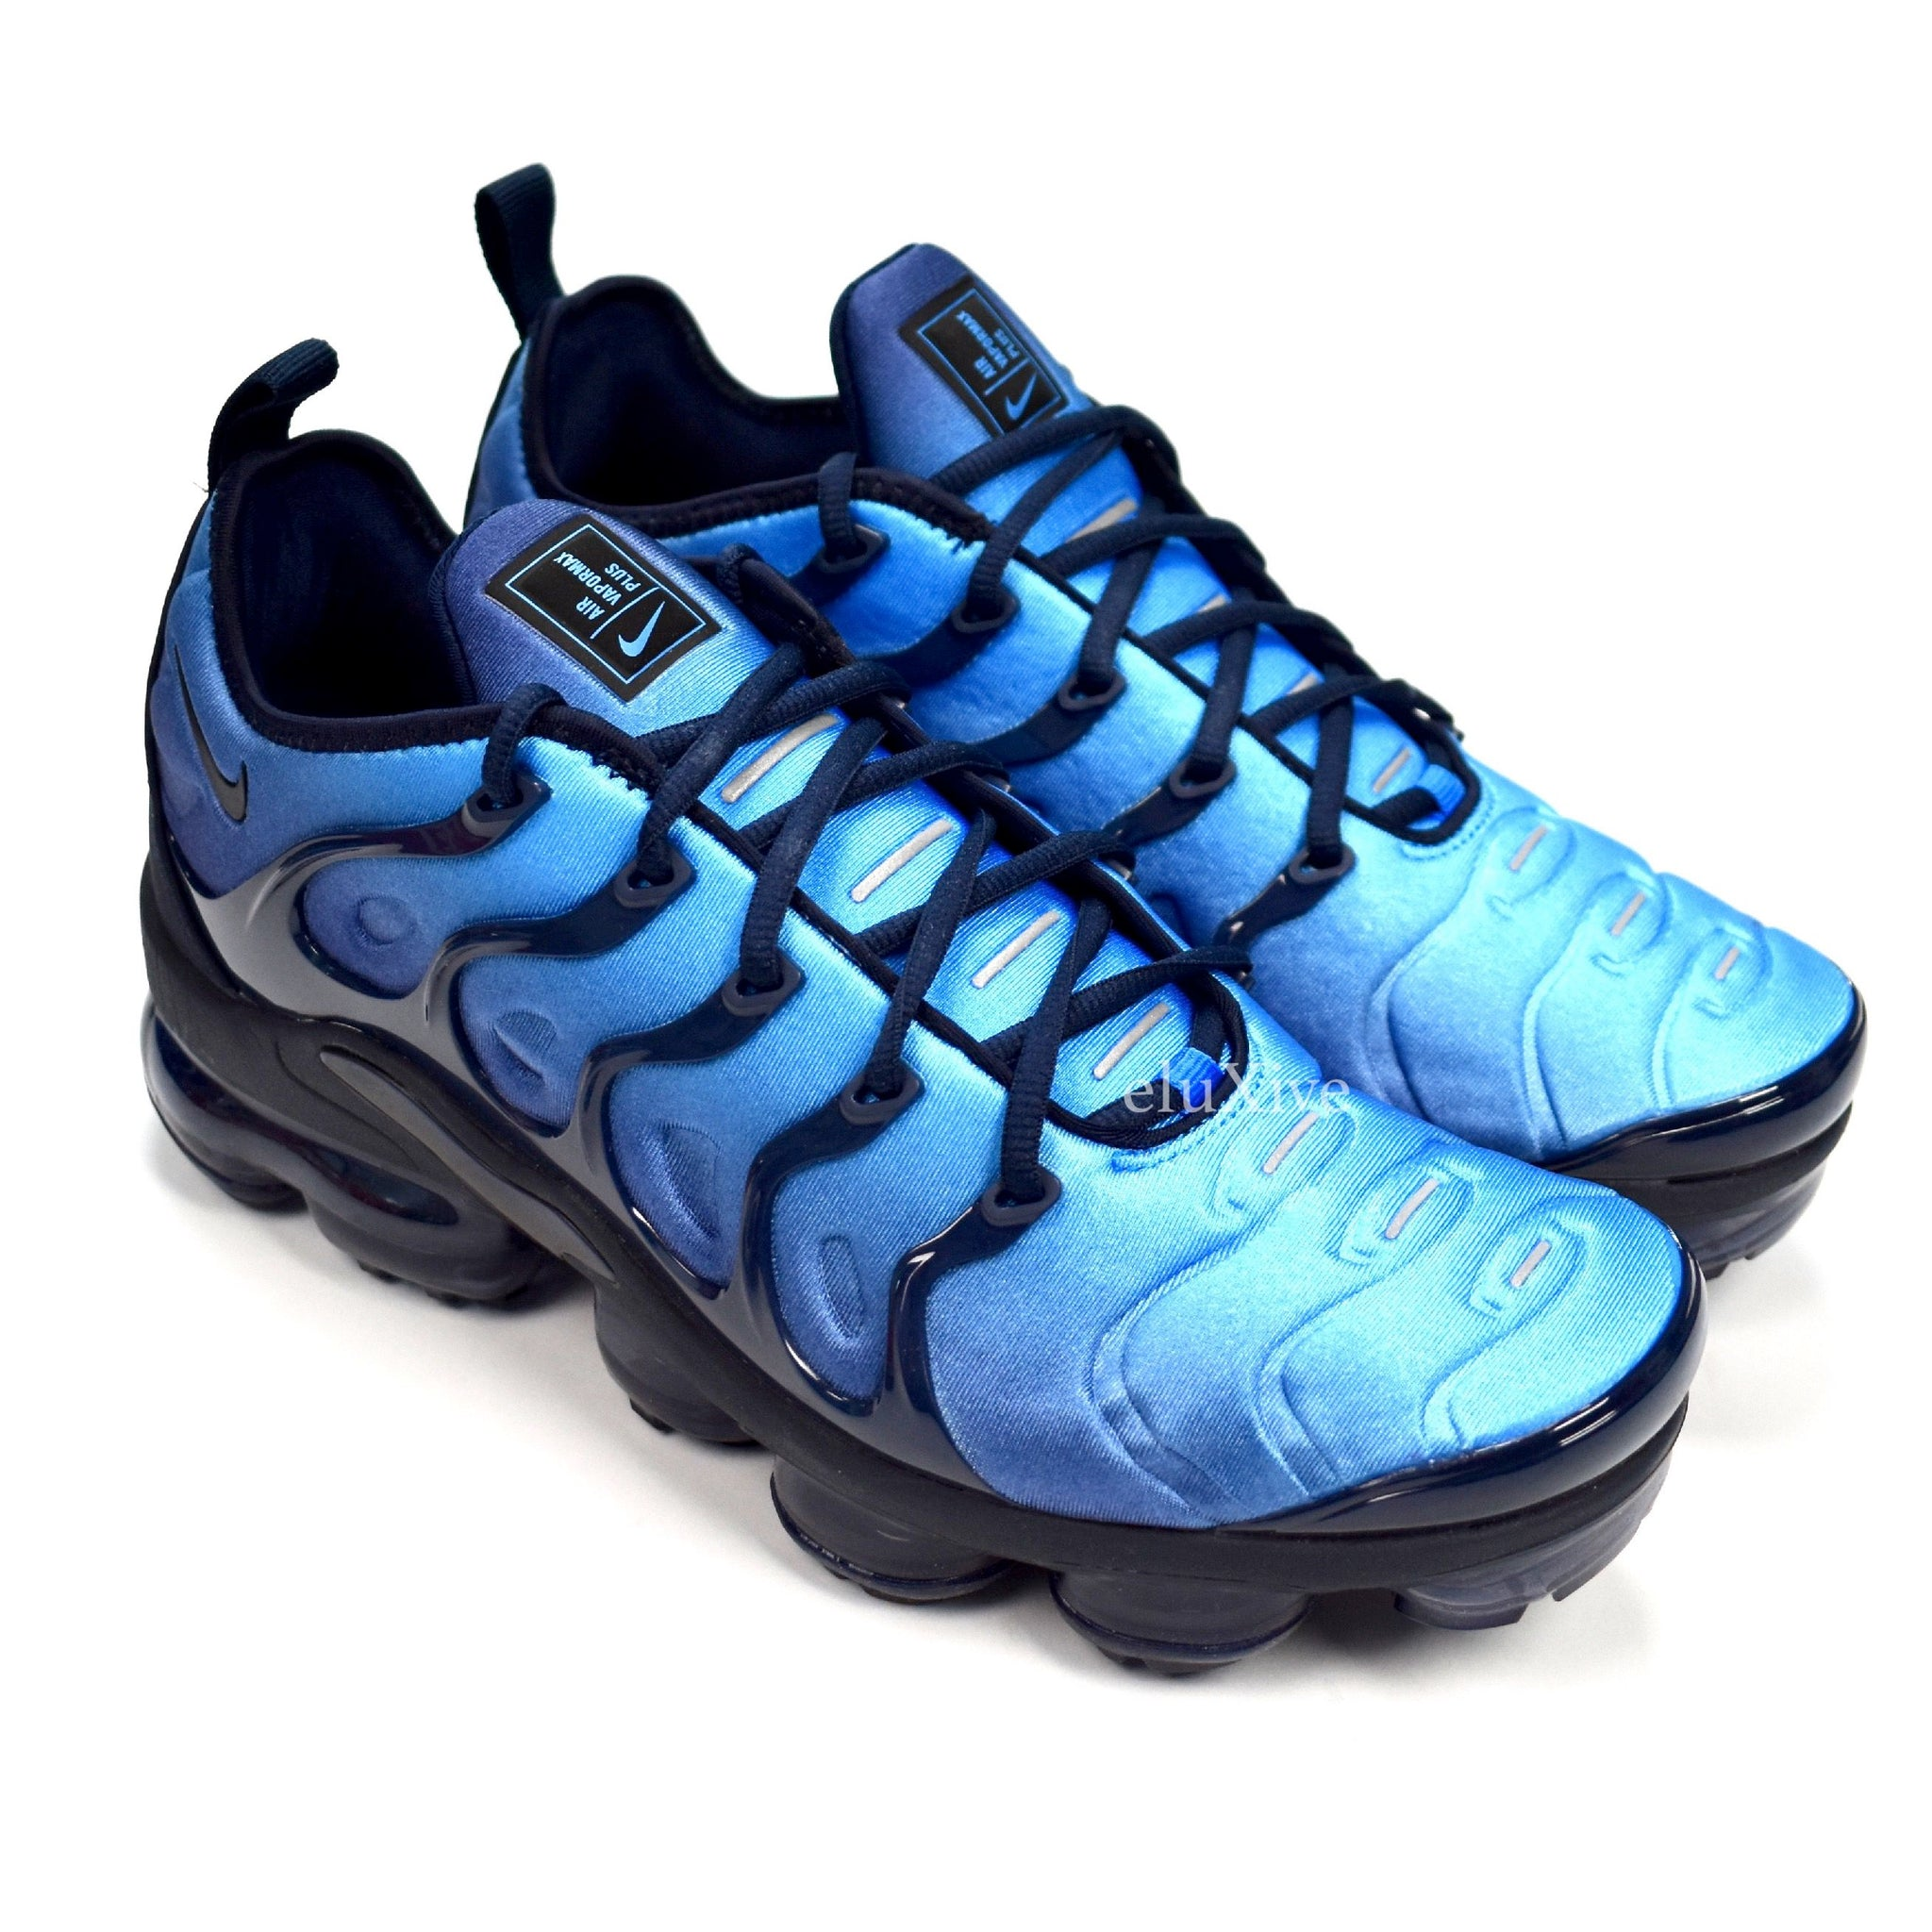 a88891007e2 ... low price nike air vapormax plus obsidian 0228a f22d1